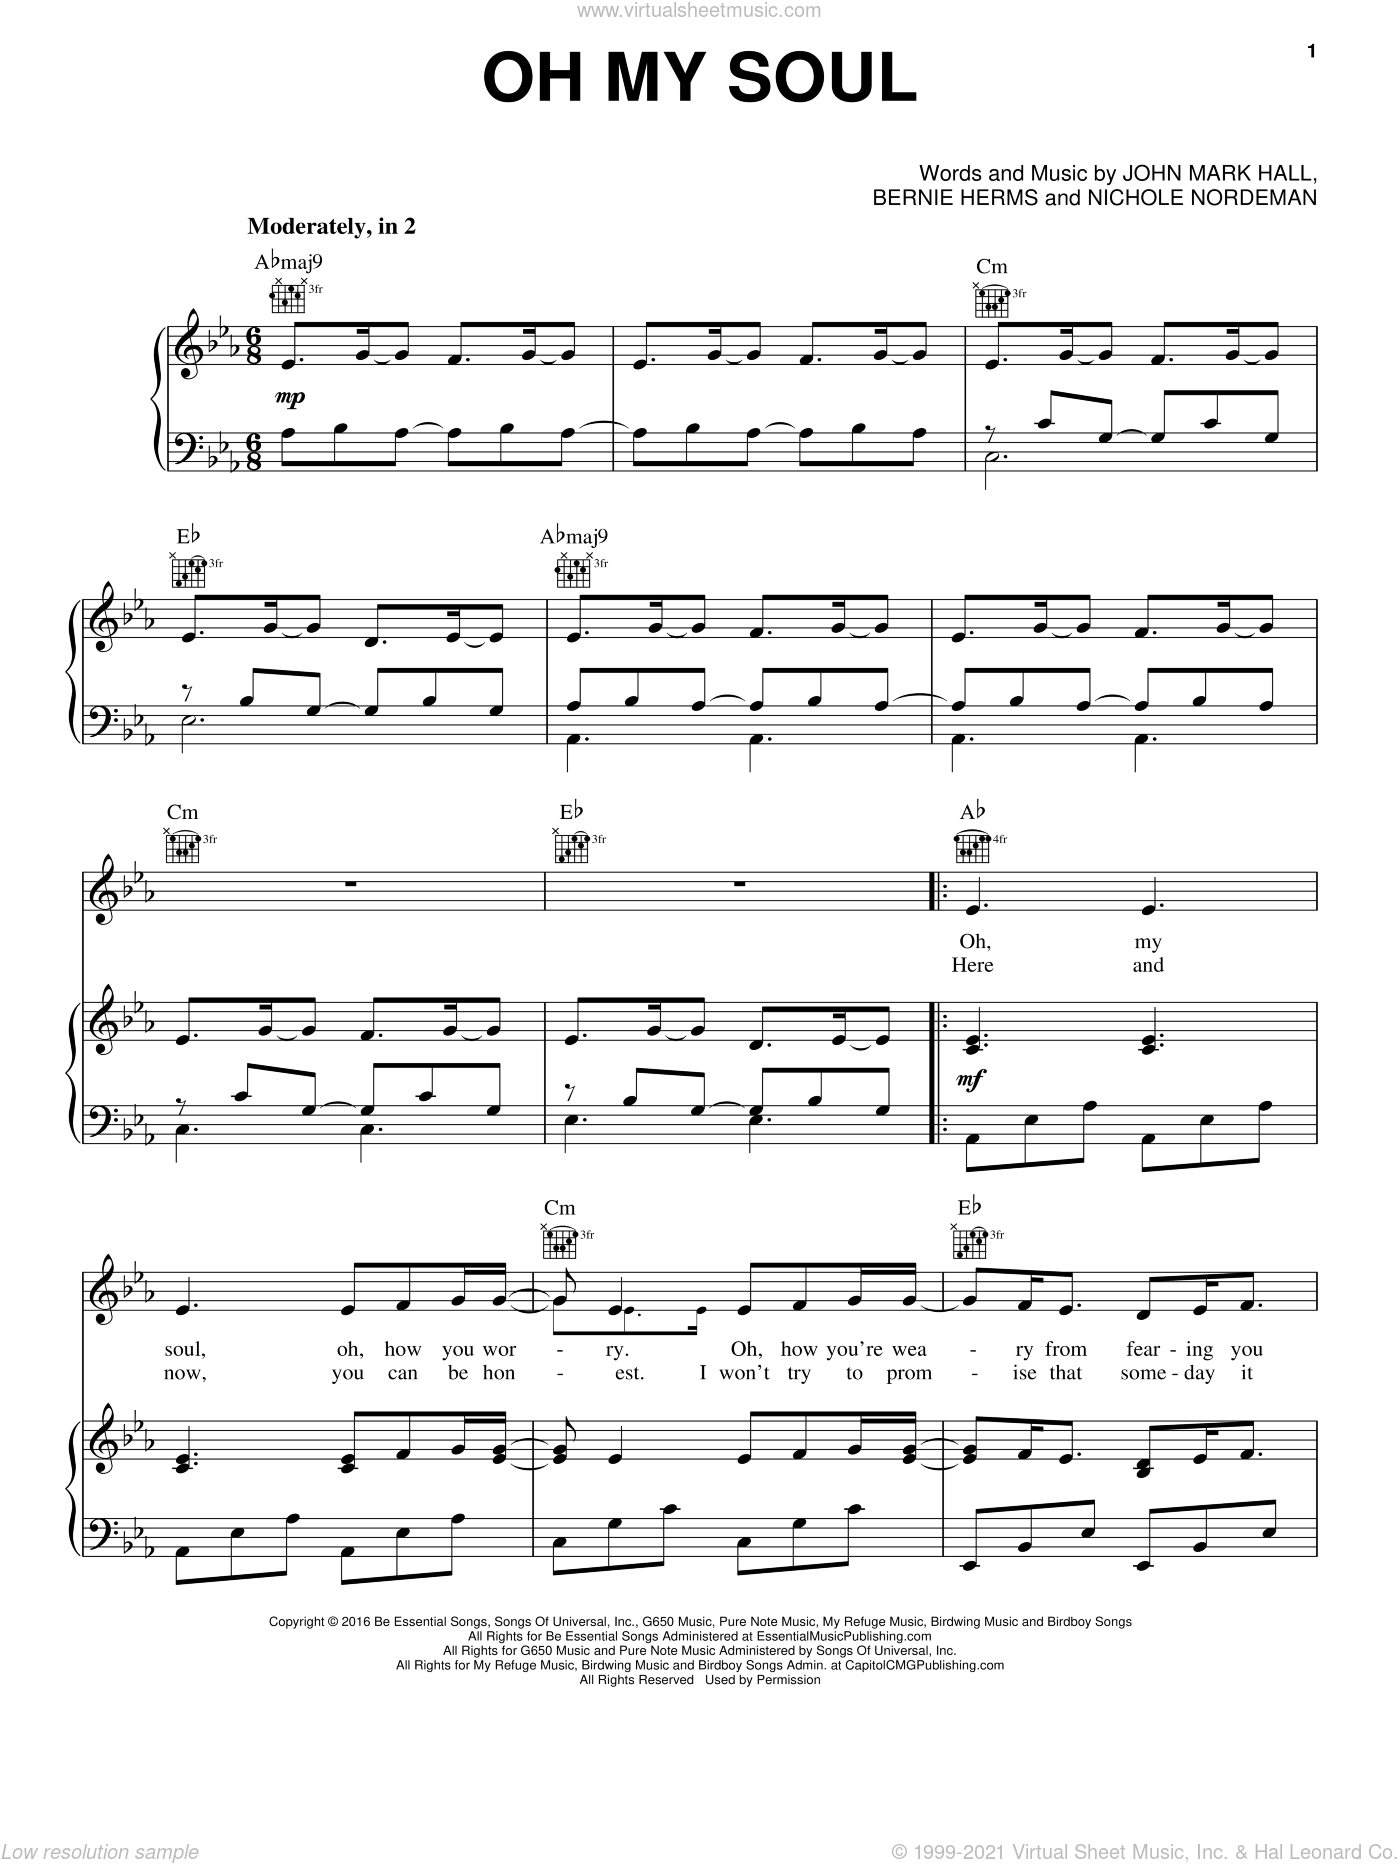 Oh My Soul sheet music for voice, piano or guitar by Casting Crowns, Bernie Herms and John Mark Hall, intermediate